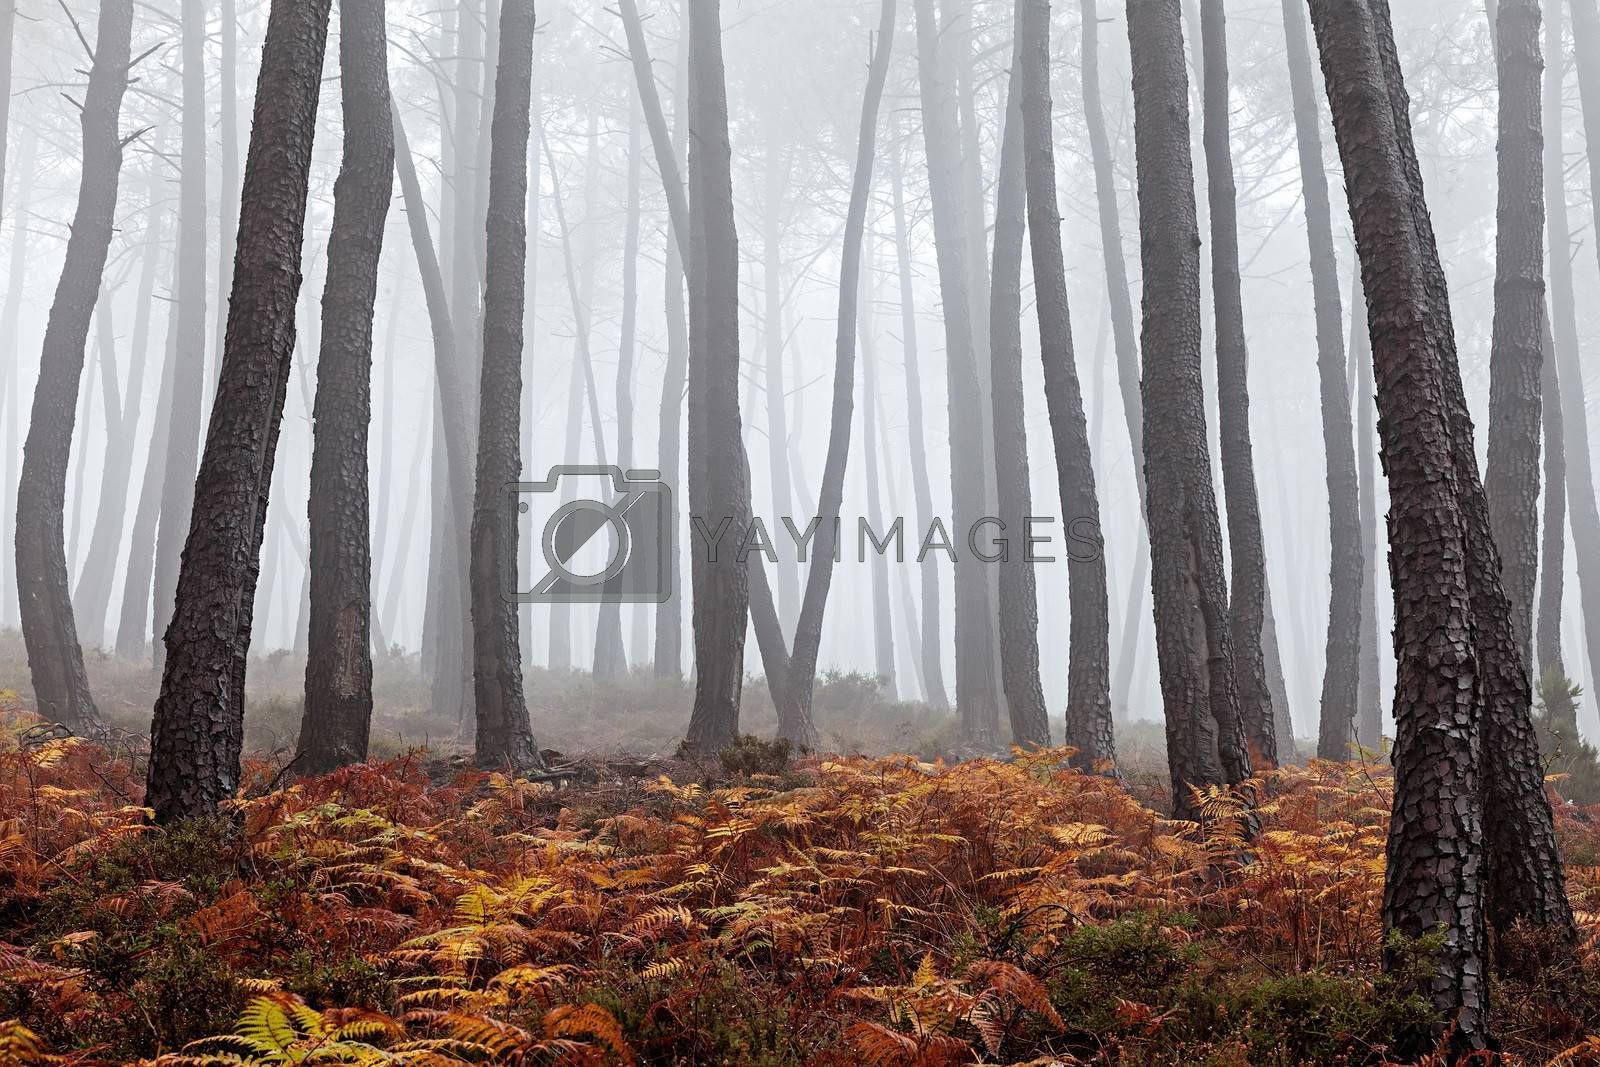 Beautiful view of a forest on a foggy day.